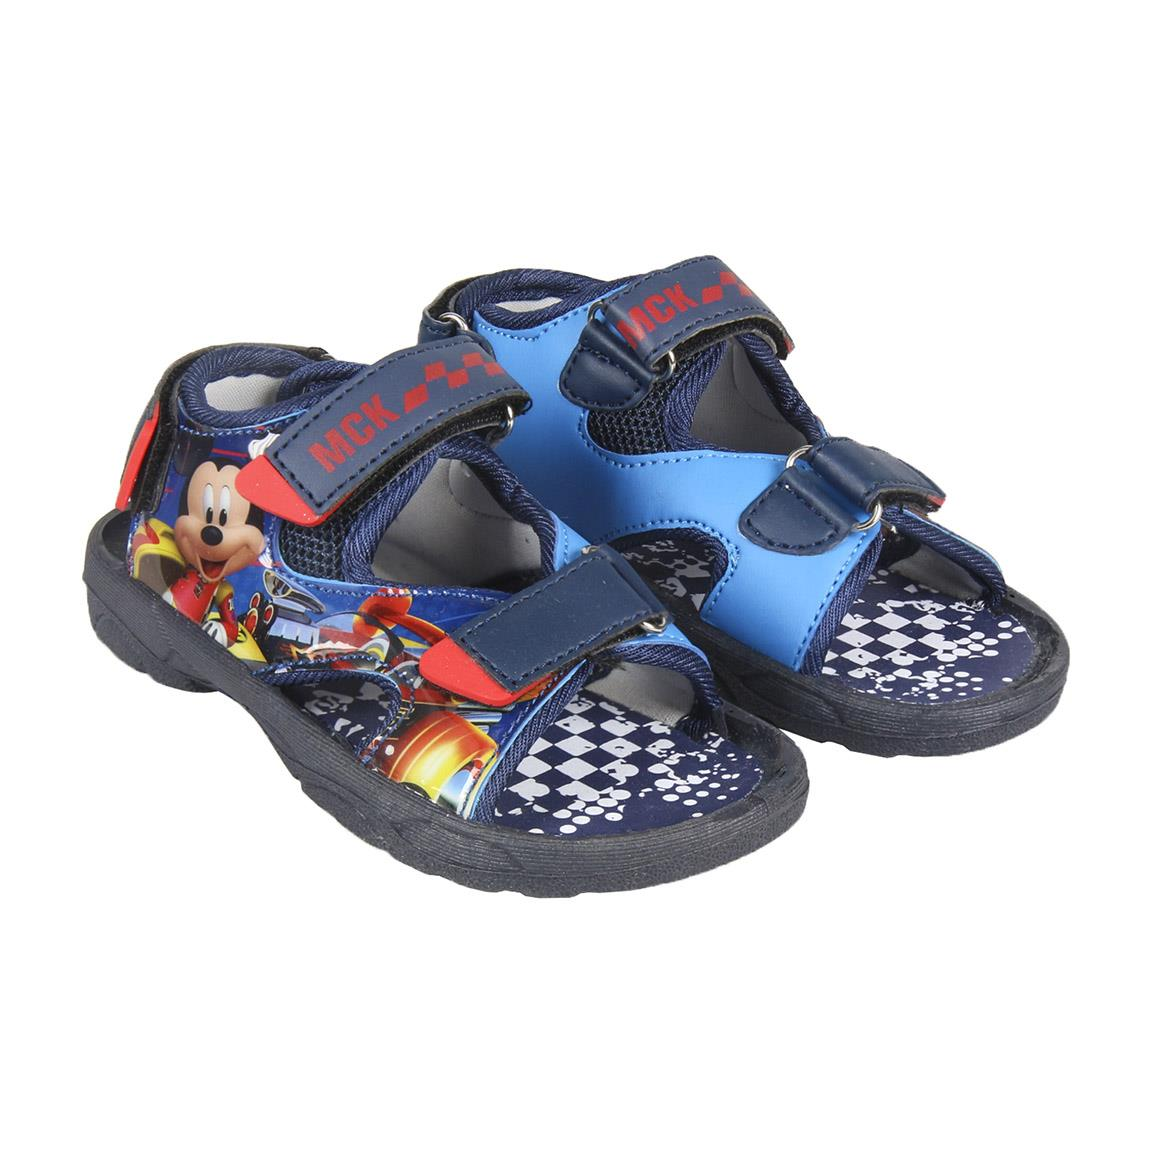 Sandals Crossing/Sports OFFICIALLY LICENSED ORIGINAL Material Approved EU